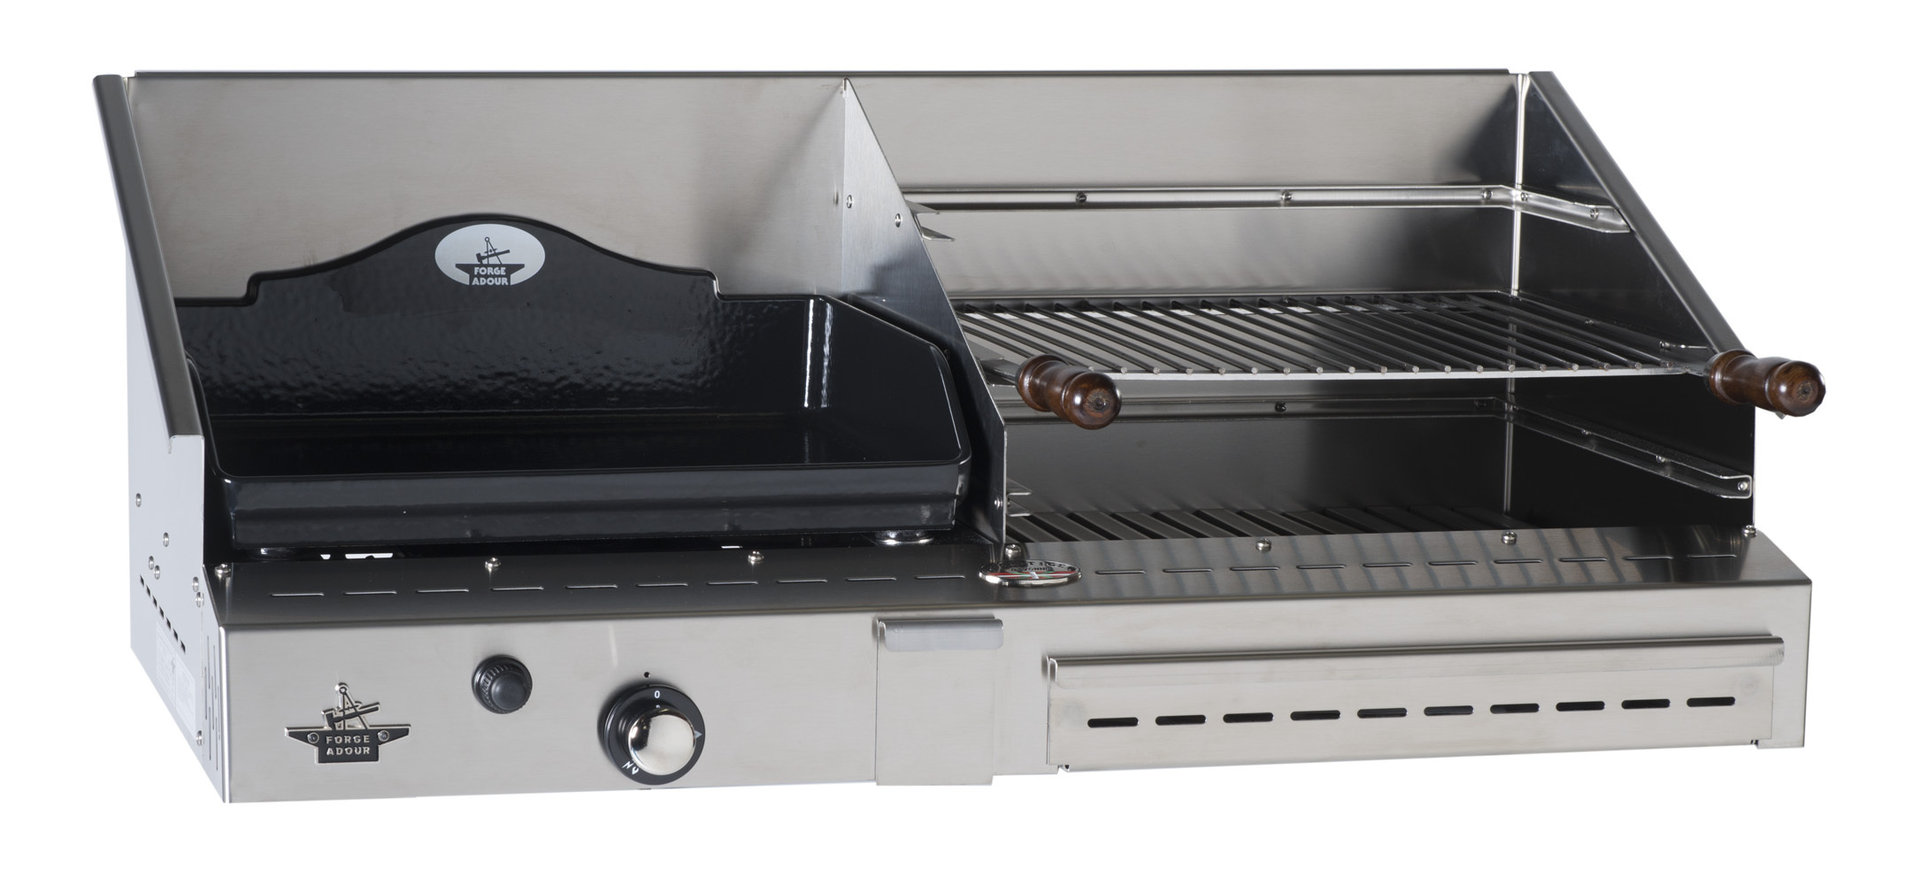 Duo plancha de gas y barbacoa 500 inox the barbecue store - Planchas para barbacoa ...